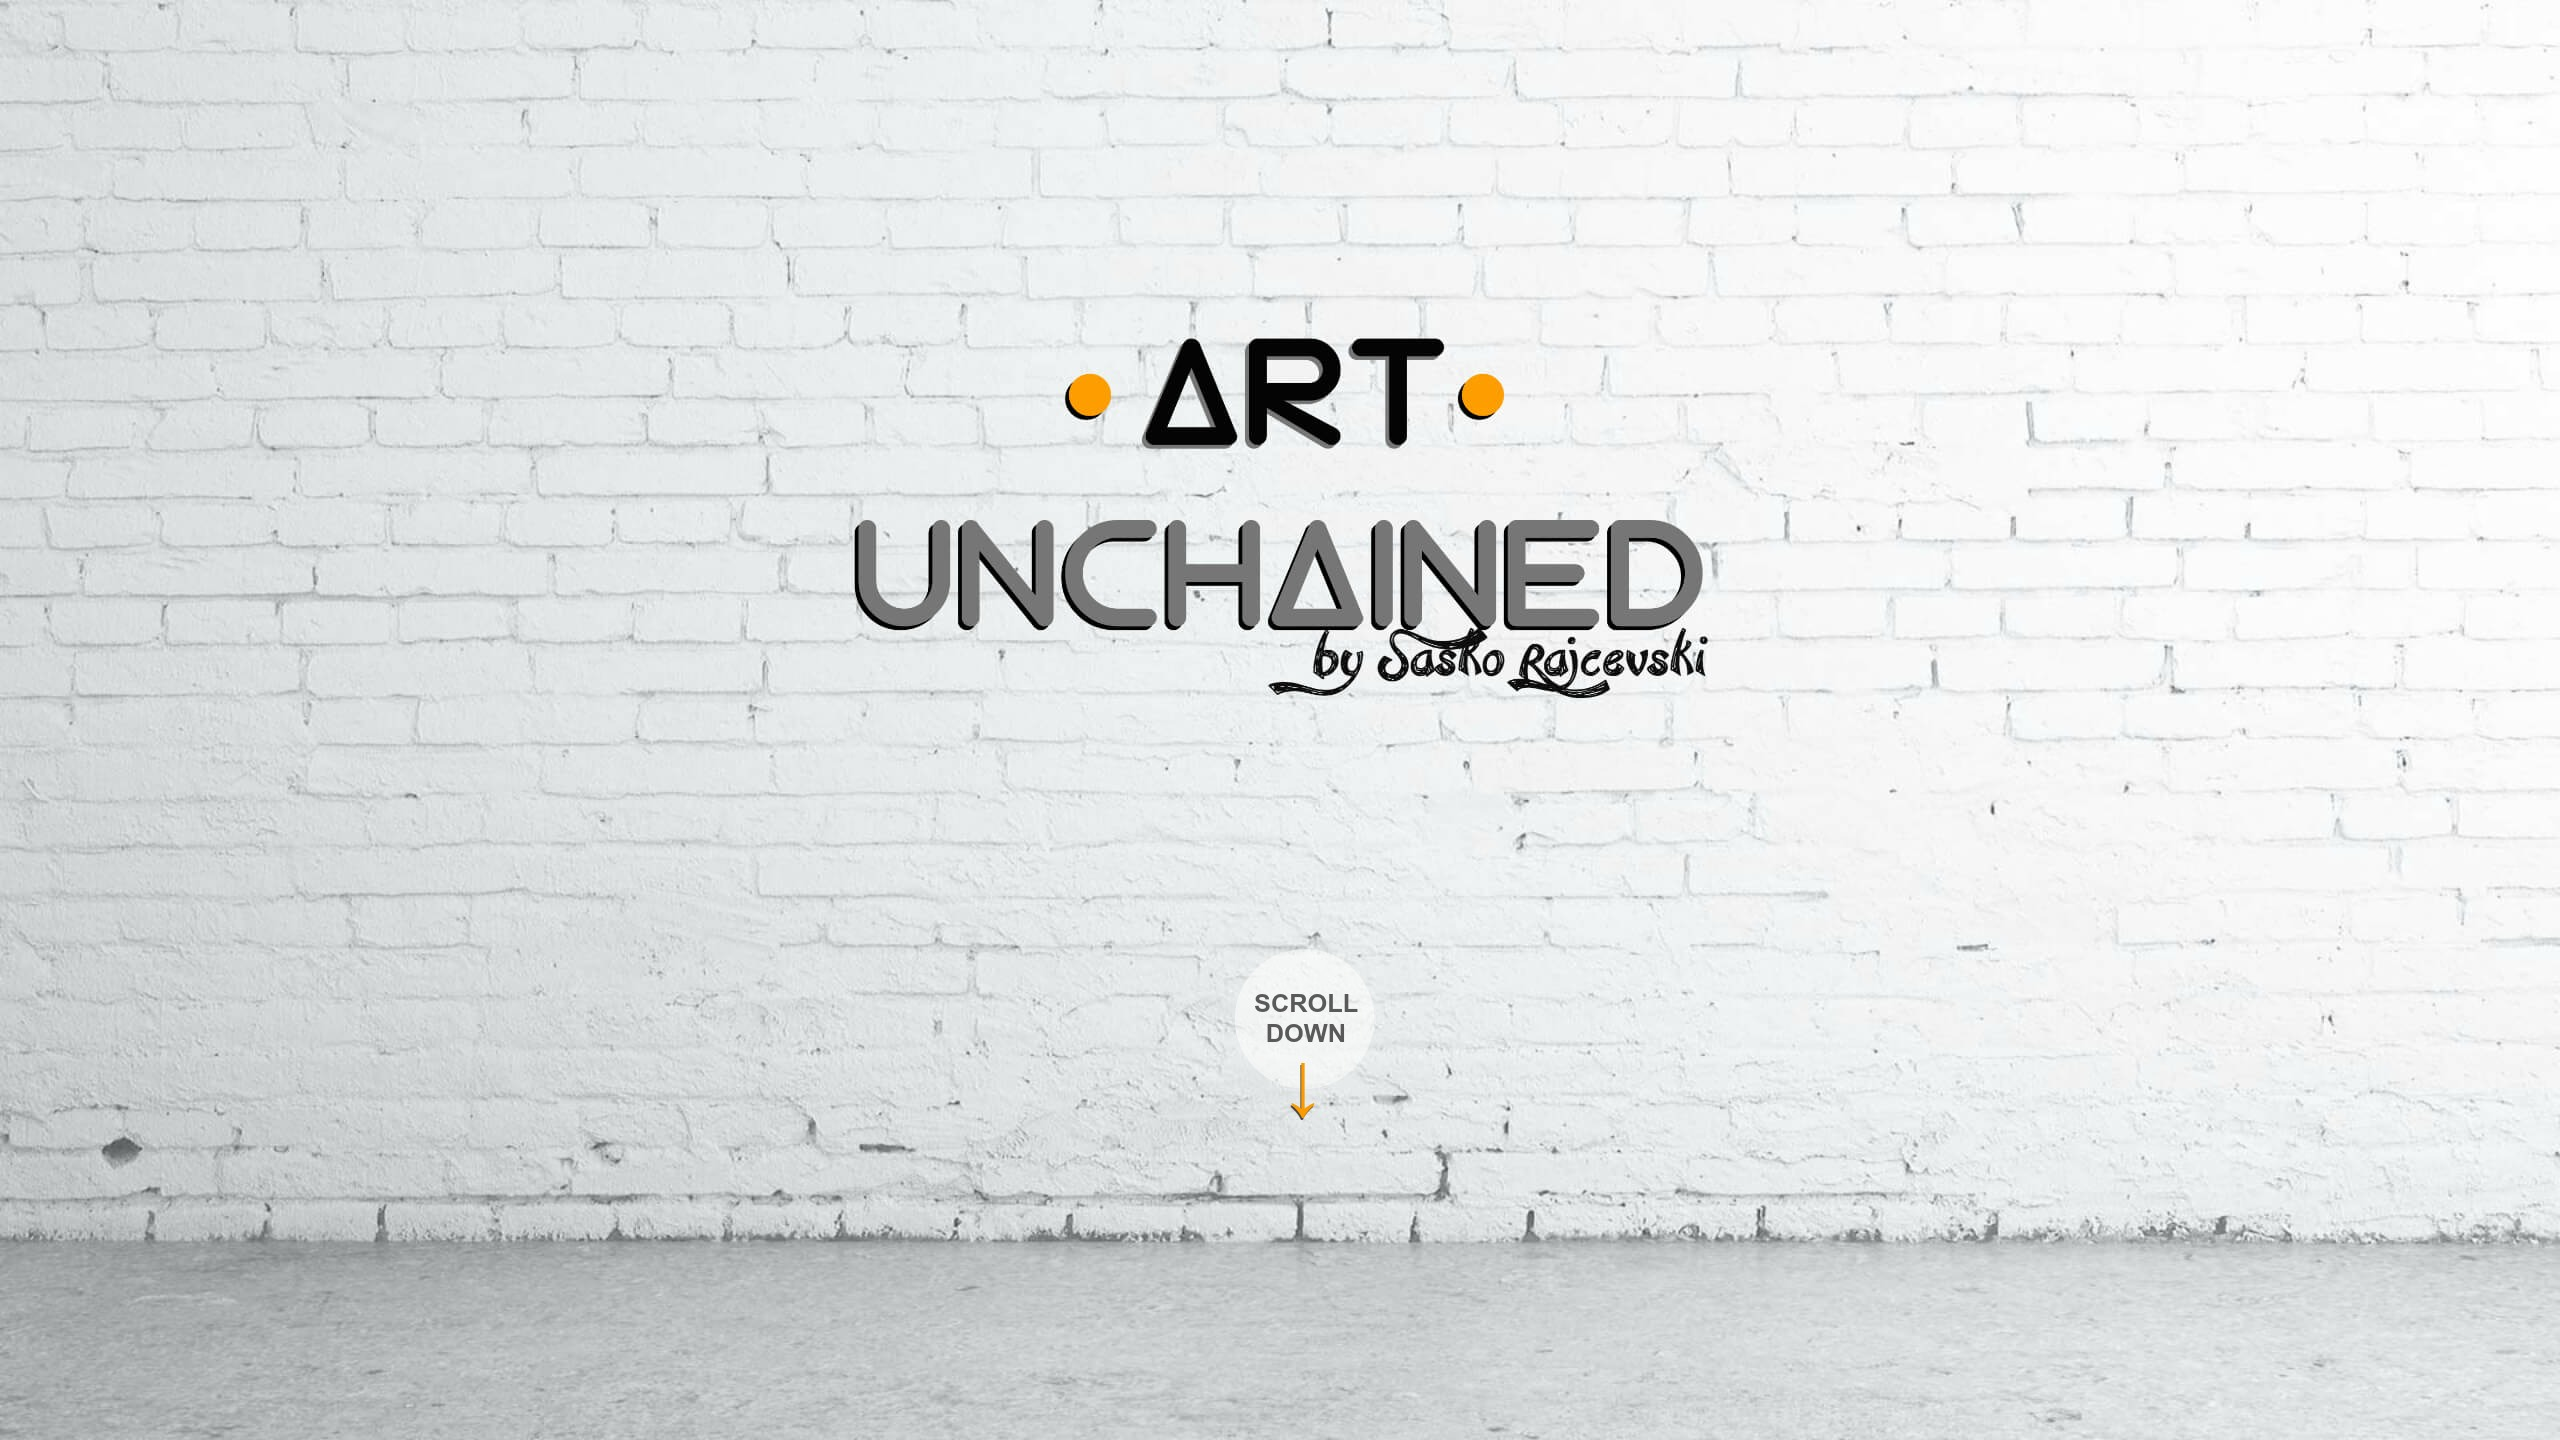 Art Unchained - Entfesselte Kunst by Sasko Rajcevki Homepage large 2560 Centered middle arrowArt Unchained - Entfesselte Kunst by Sasko Rajcevki Homepage large 2560 Centered middle arrow